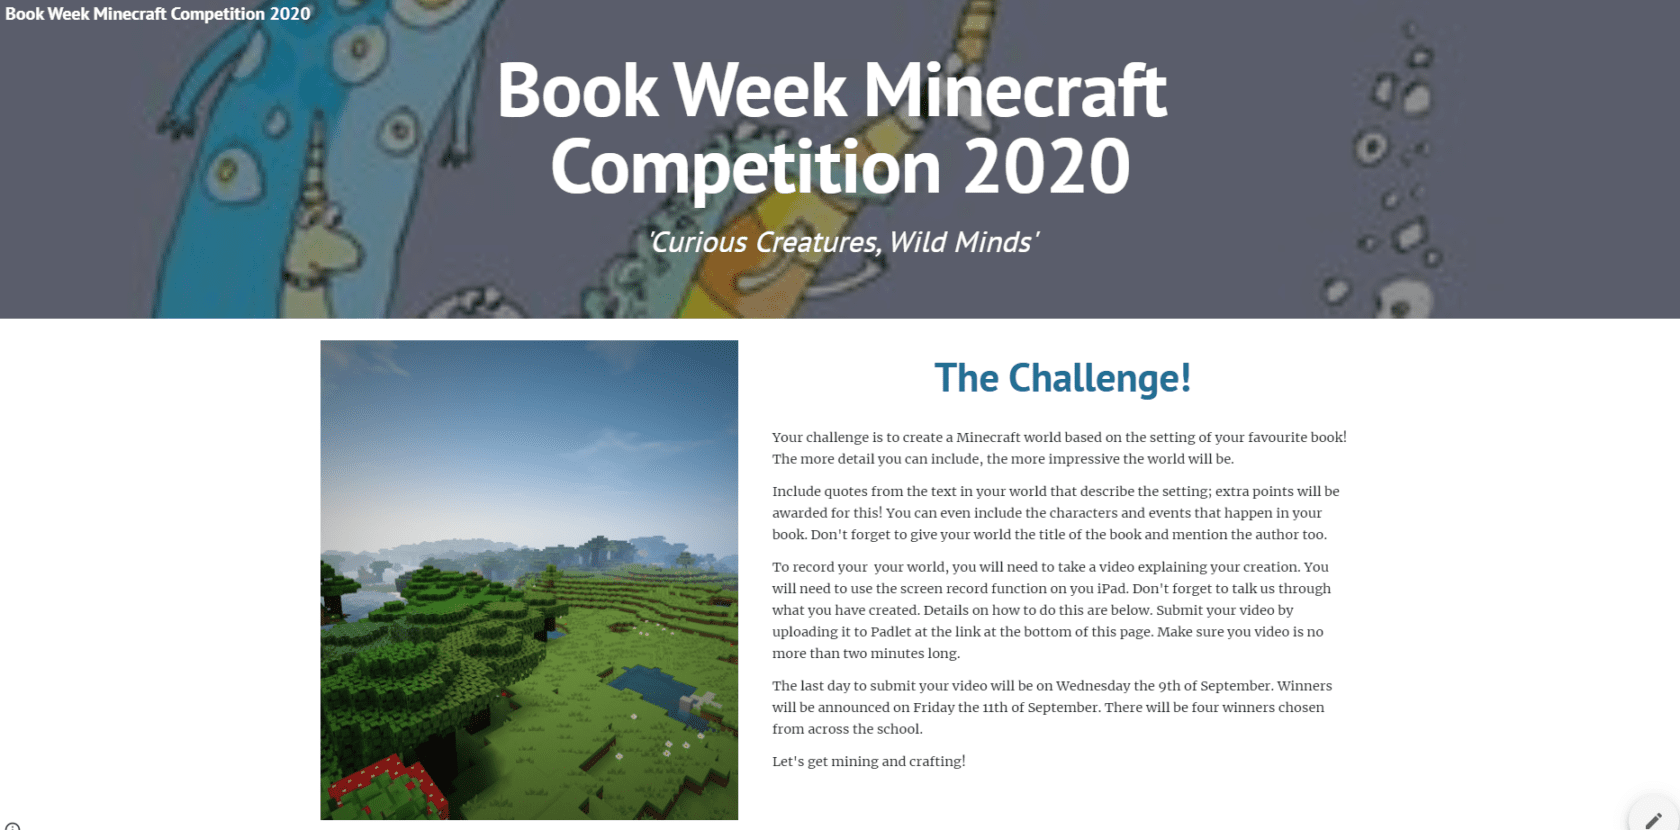 Book Week Minecraft Competition 2020